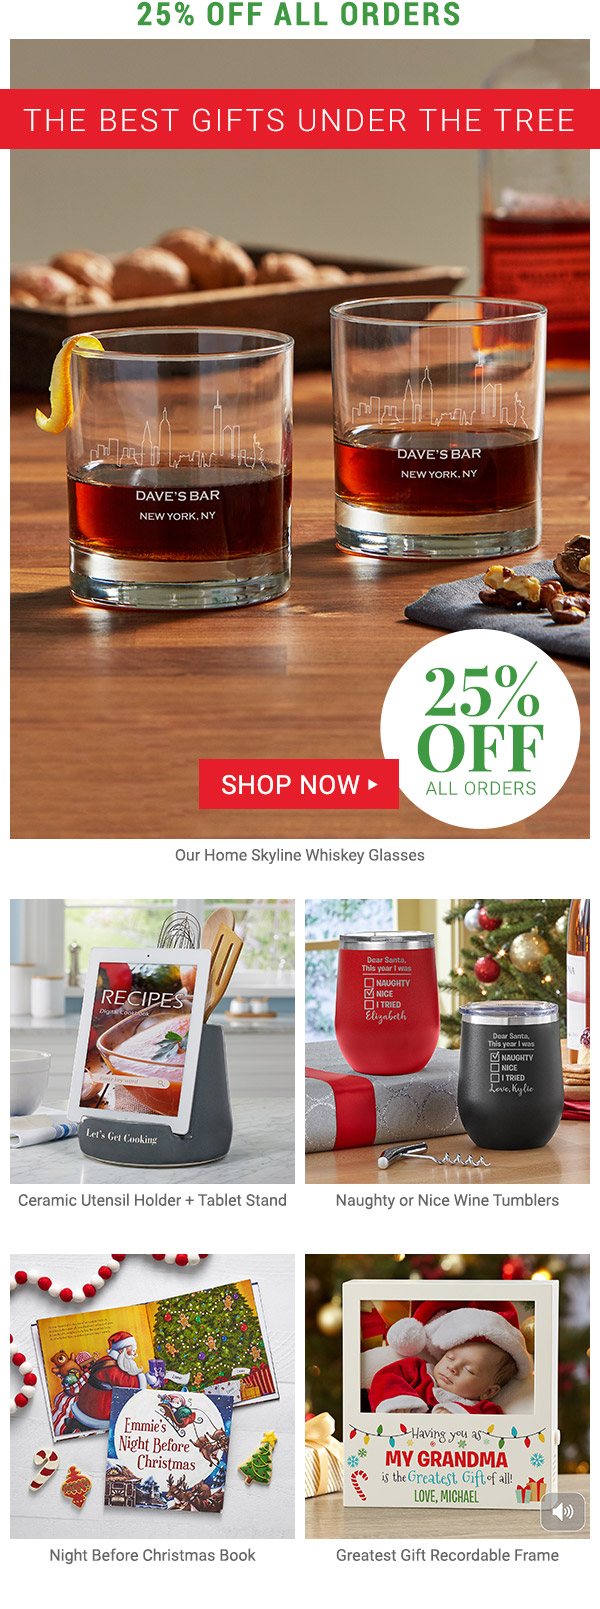 Save 25% your order. Shop Now.